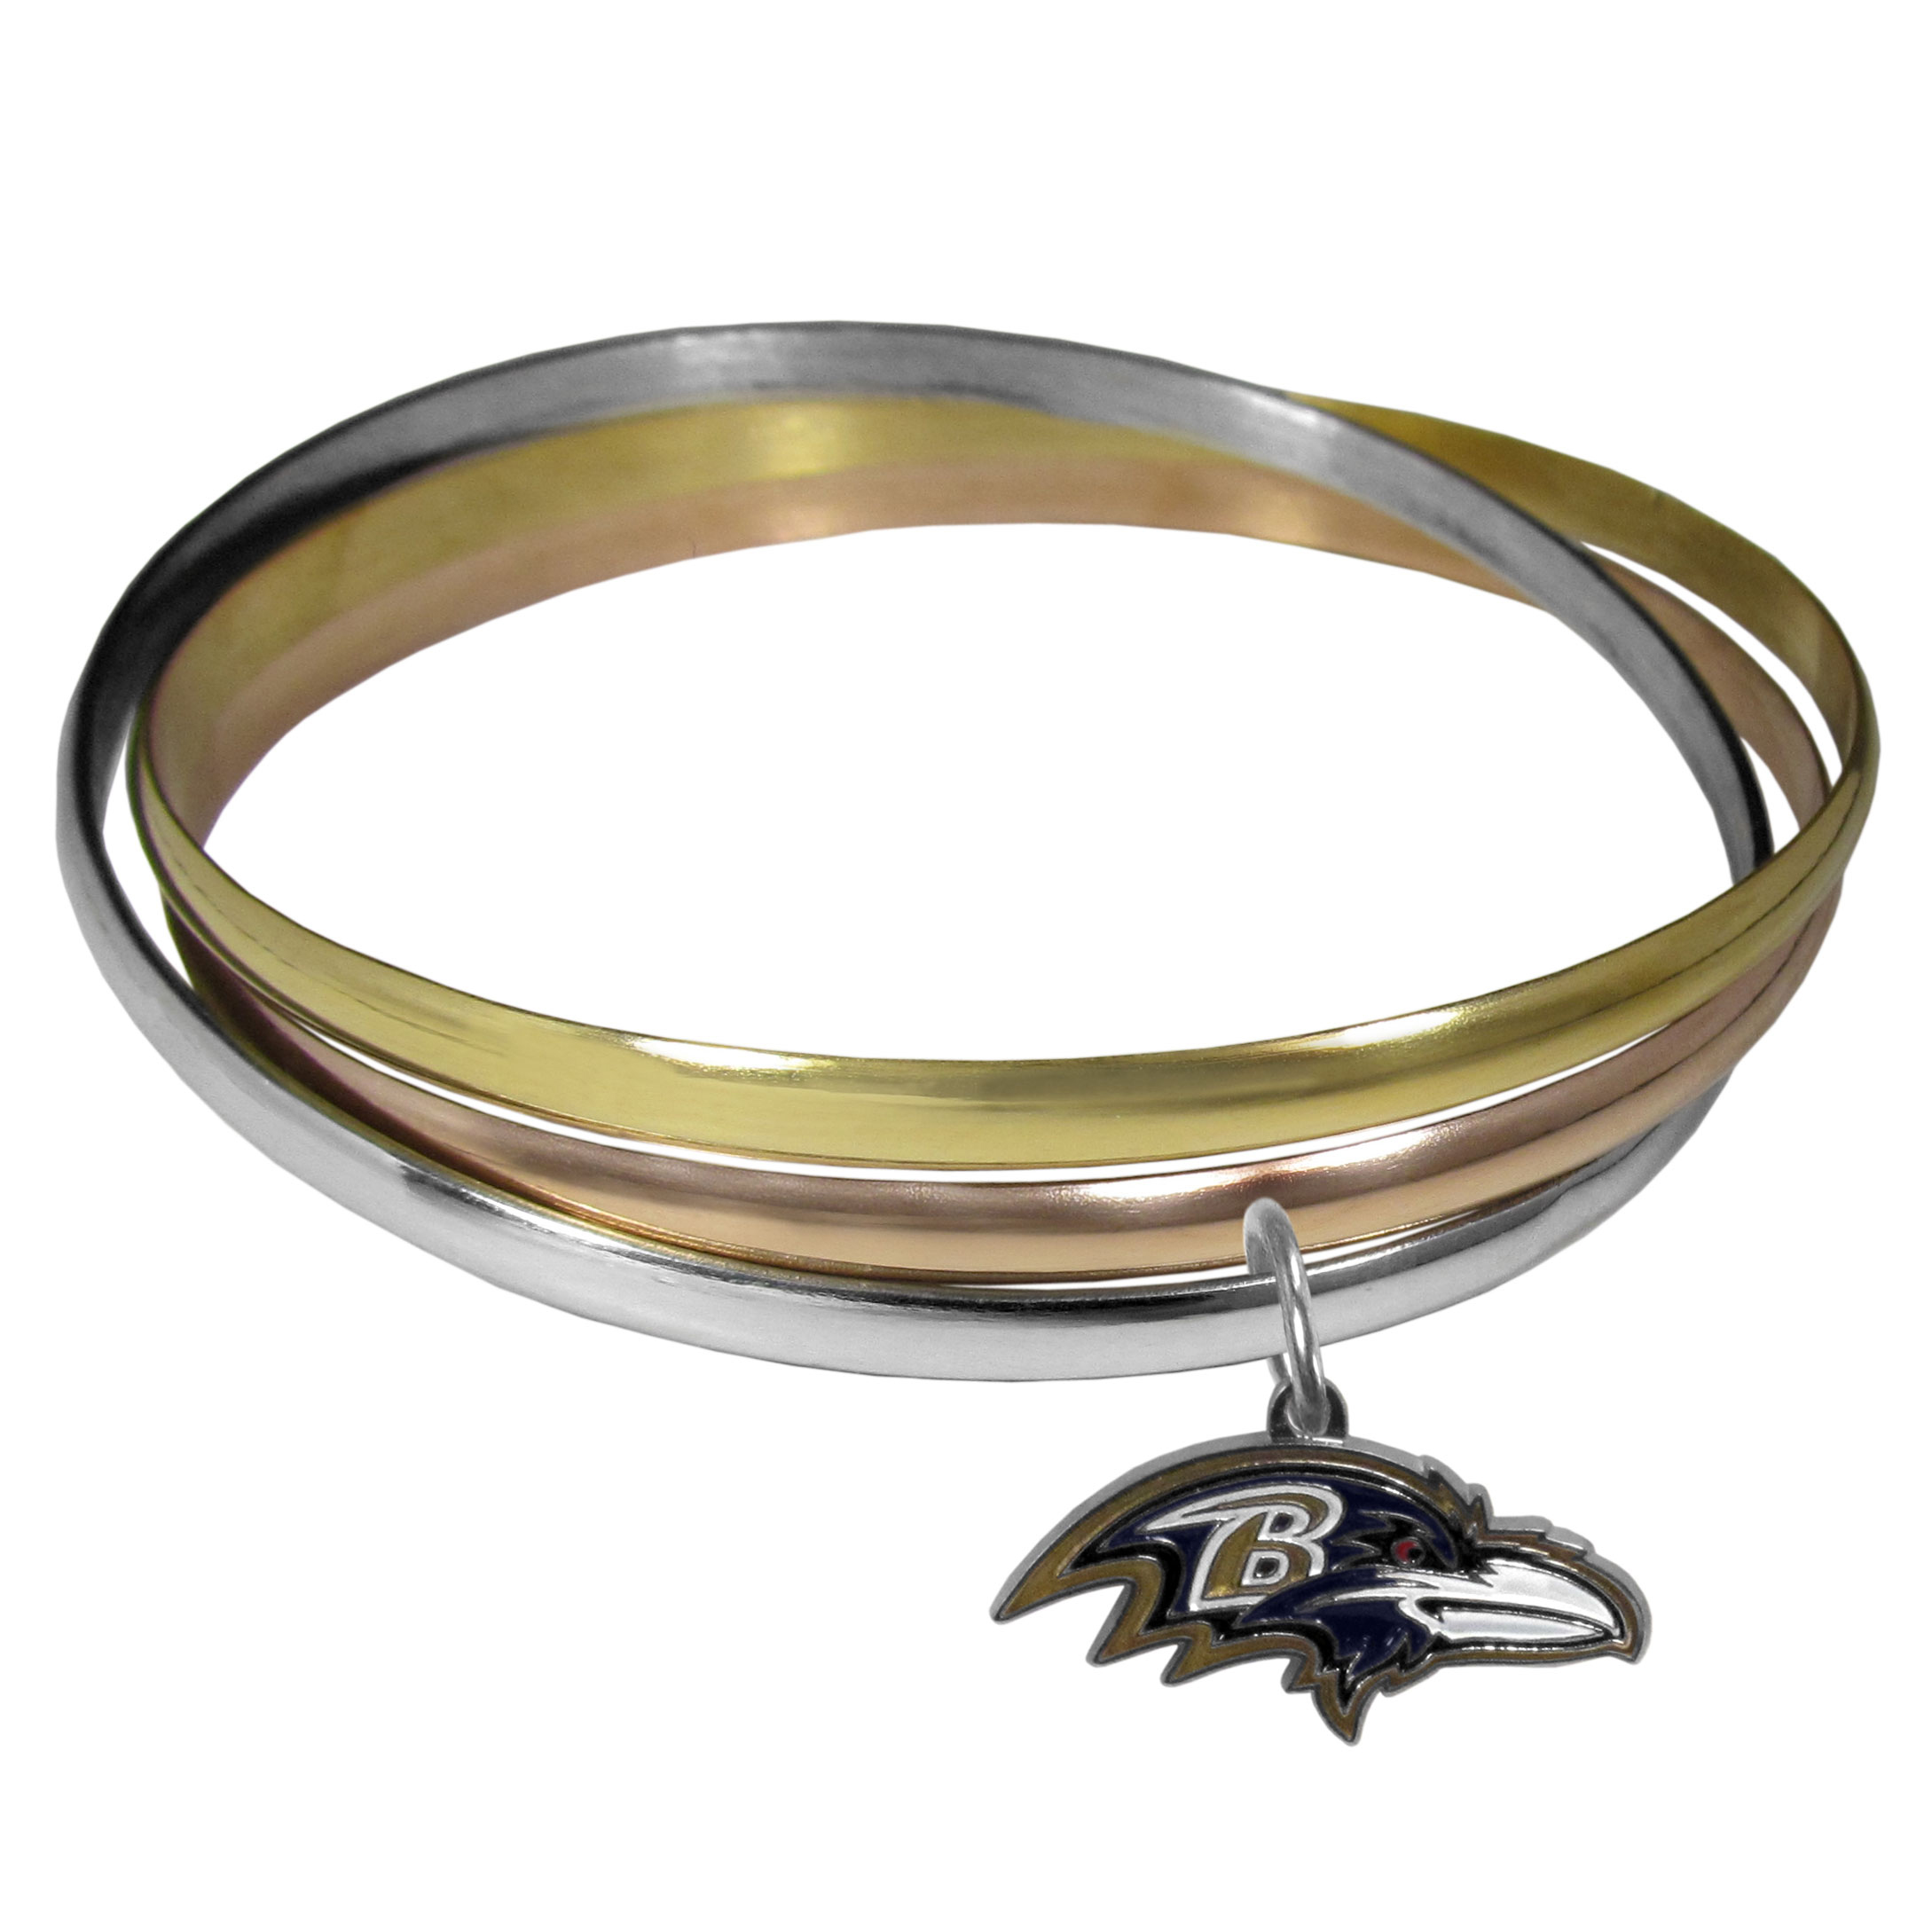 Baltimore Ravens Tri-color Bangle Bracelet - These beautiful bangles come in a interlocking style and feature a fully cast Baltimore Ravens charm with enameled team colors. The bracelet has a silver toned bangle, gold tone bangle and brass toned bangle.